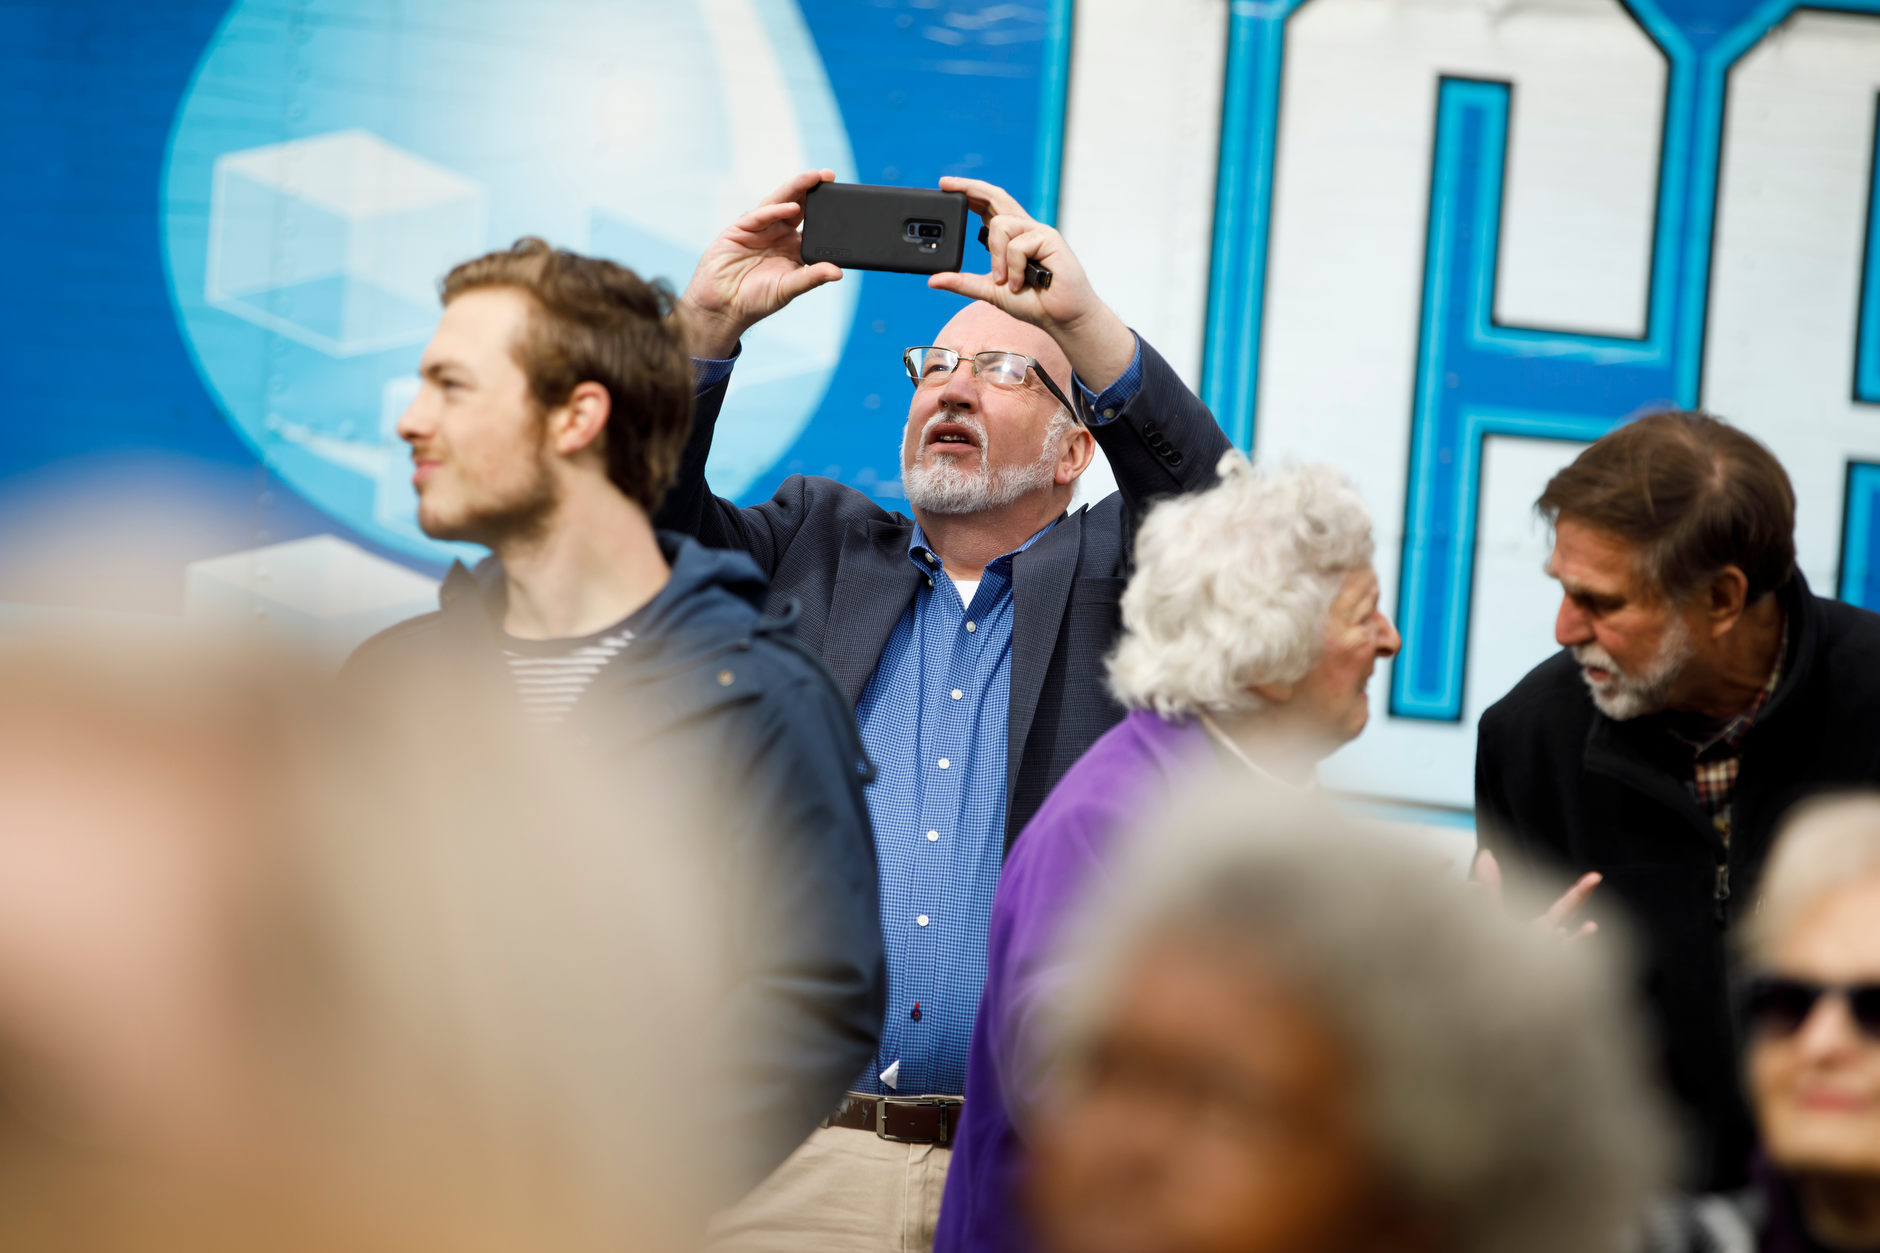 Jeffrey P. Weaver, campaign manager for Bernie Sanders' 2016 presidential campaign, takes a cell phone of the crowd before Sanders spoke at a rally for Liz Watson, the Democratic nominee for Indiana's 9th congressional district, in Dunn Meadow at Indiana University Bloomington on Friday, Oct. 19, 2018. (James Brosher/IU Communications)